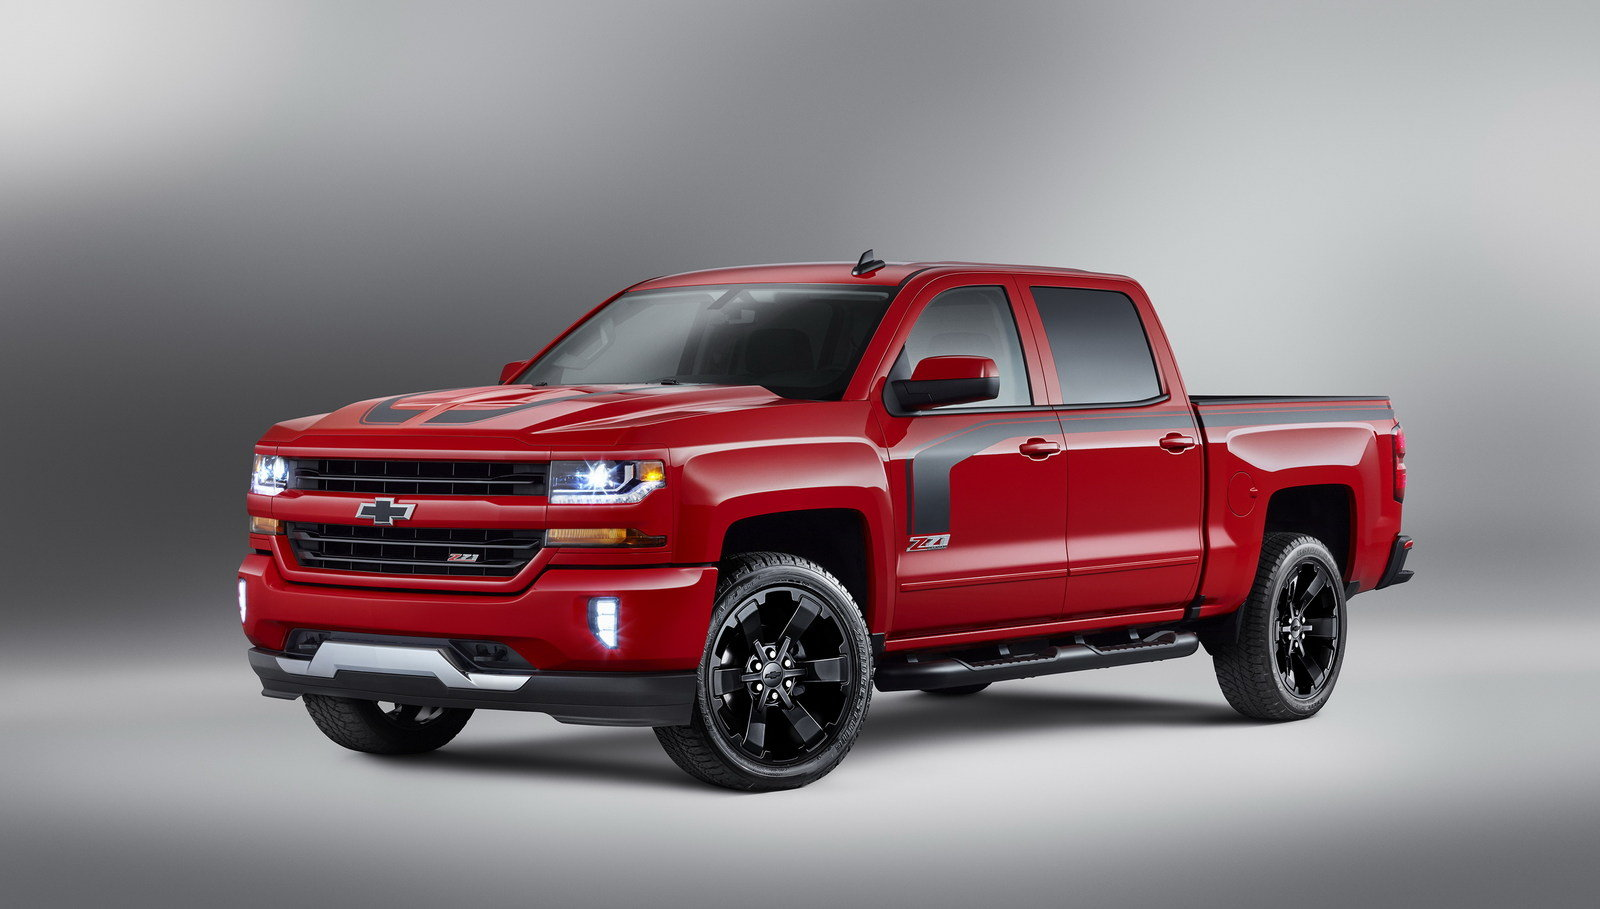 2016 chevrolet silverado rally edition picture 672025 truck review top speed. Black Bedroom Furniture Sets. Home Design Ideas